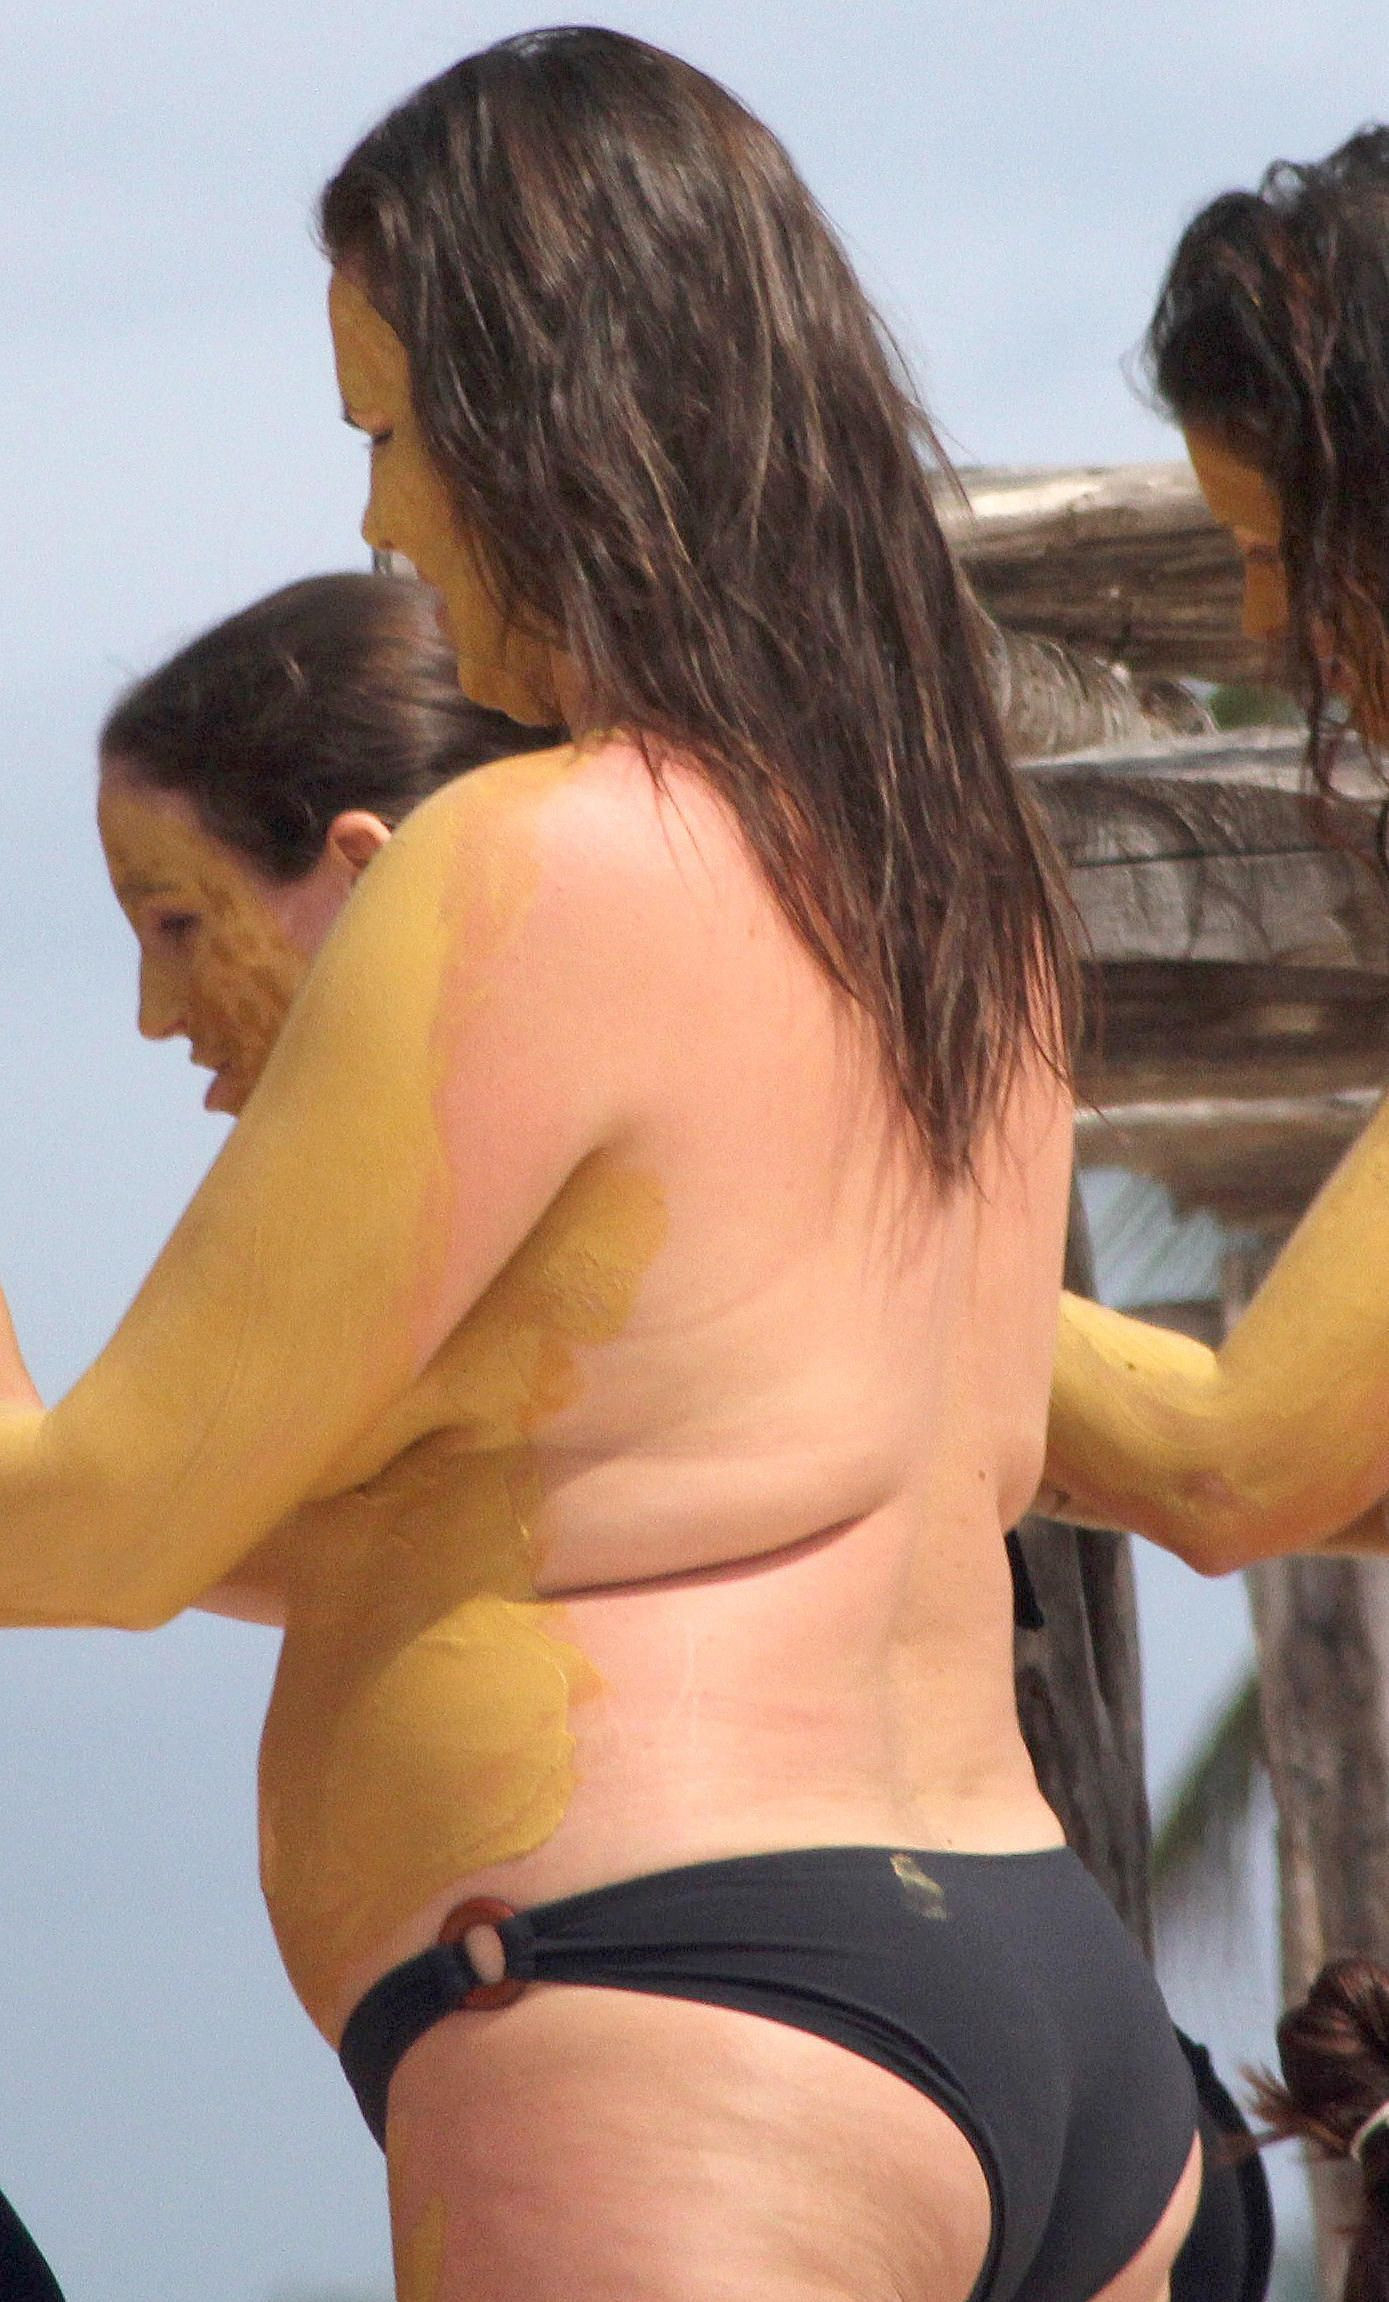 Candice Huffine Nude fappenings.com 7